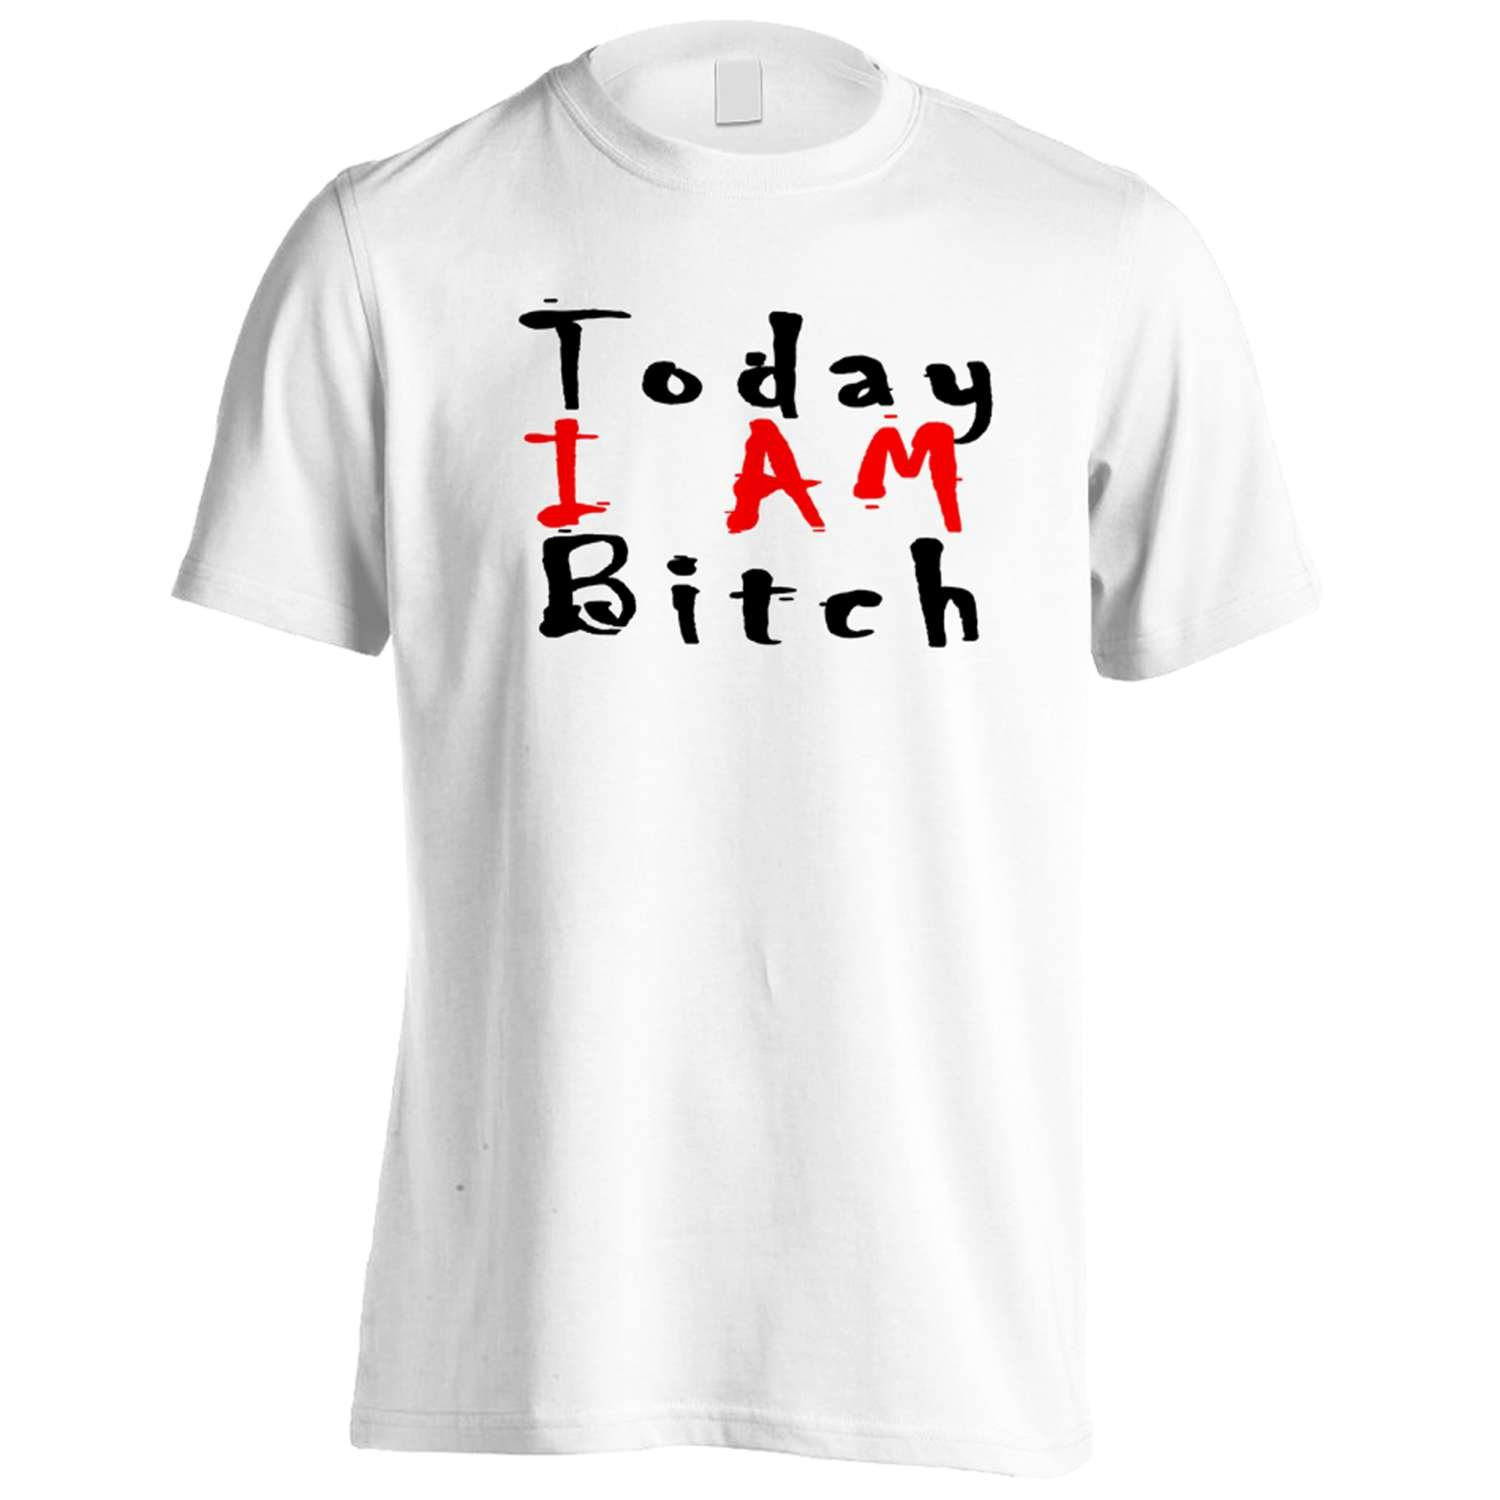 Today I AM Bitch Funny Novelty New Men's T-Shirt Tee g43m